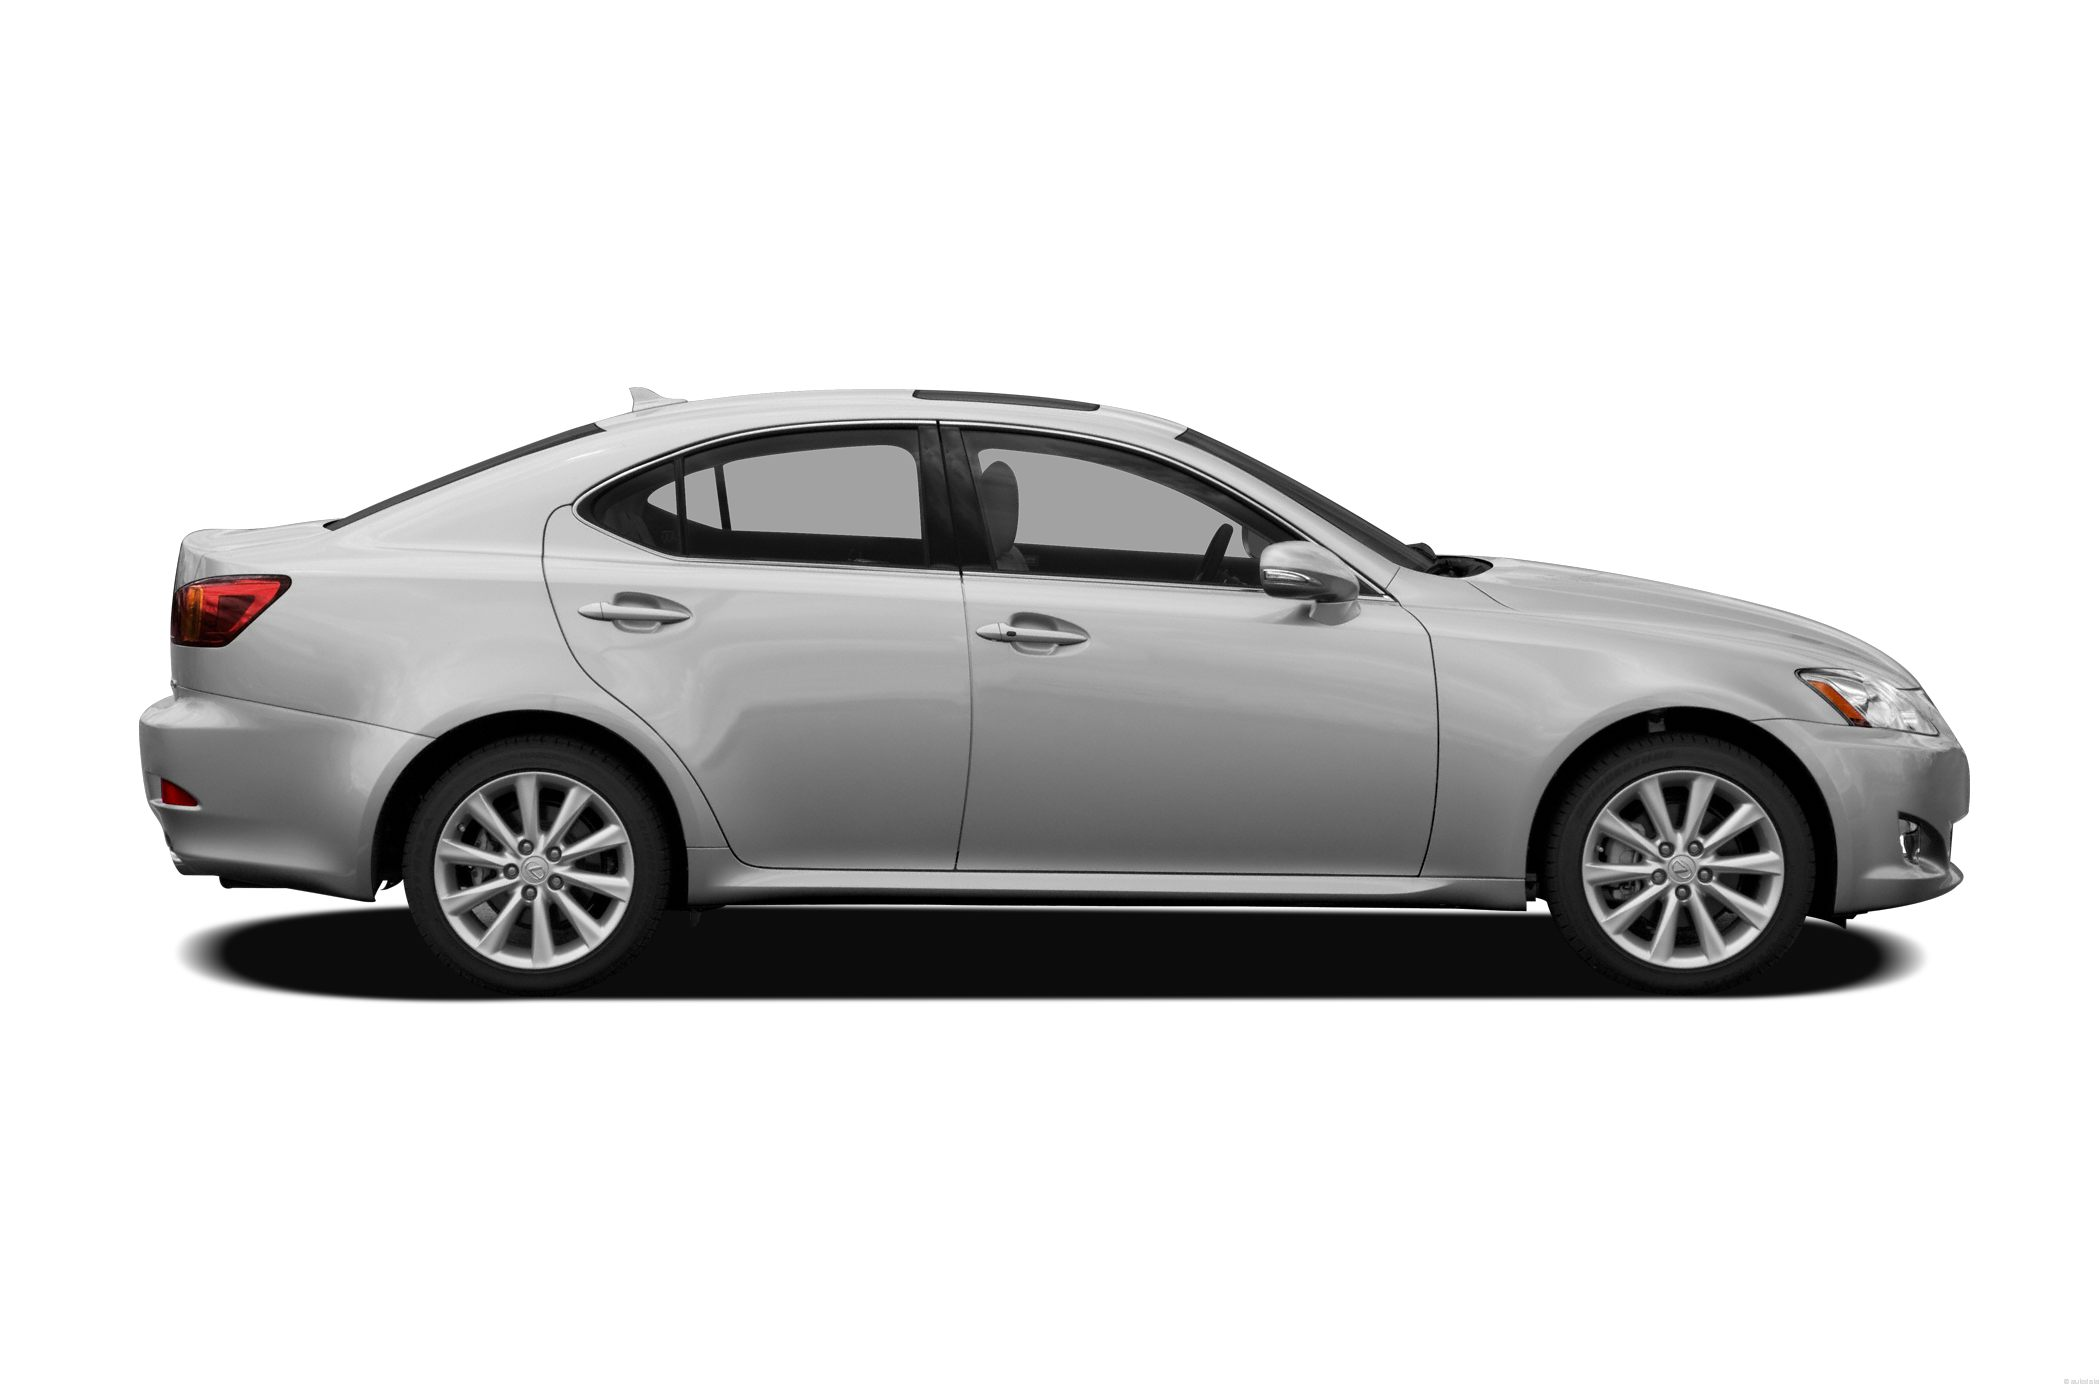 2012 Lexus Is 250 #15